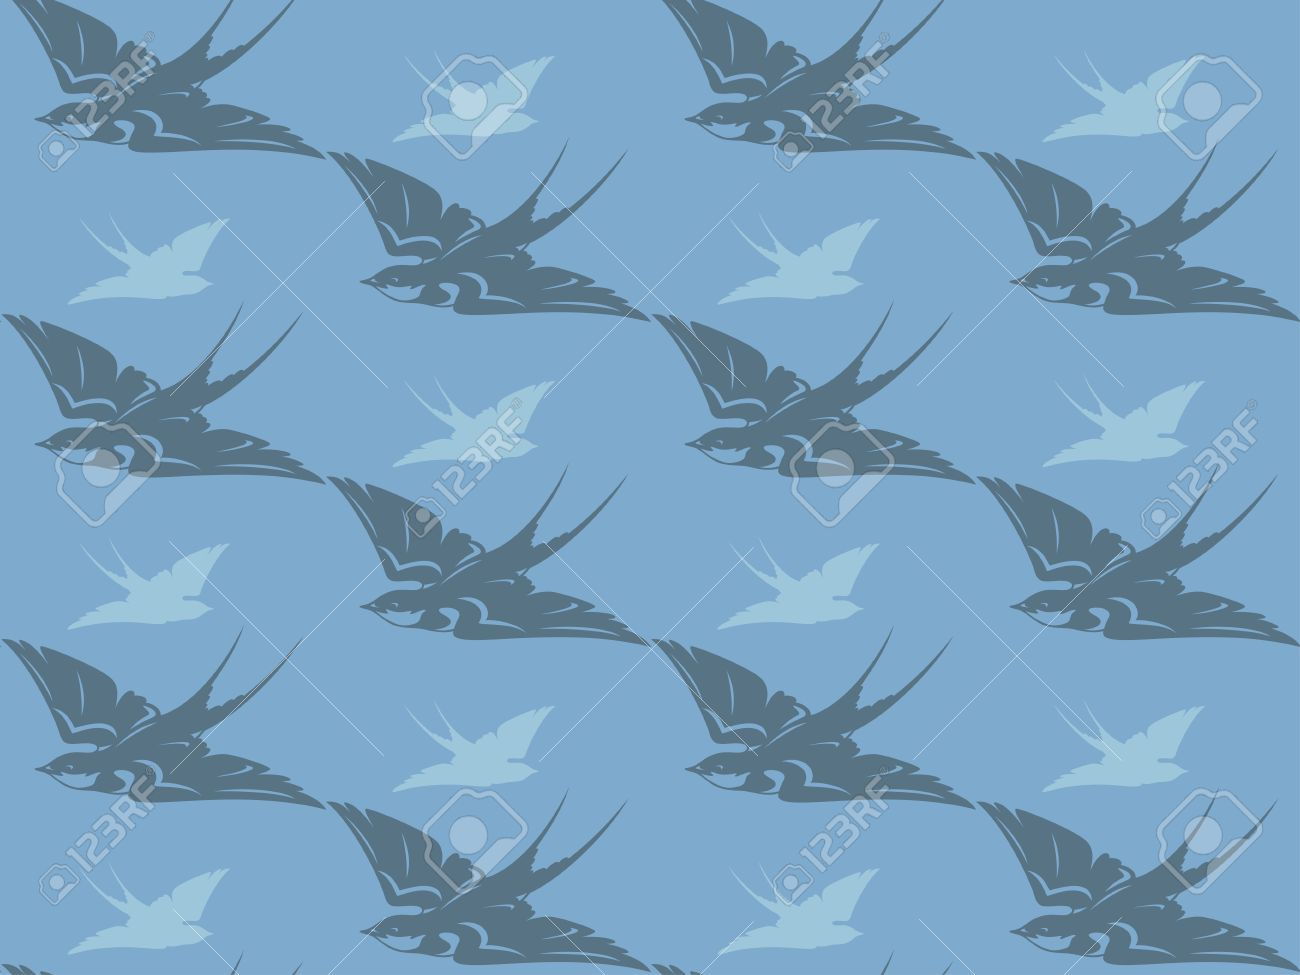 Flying Swallows Seamless Background.